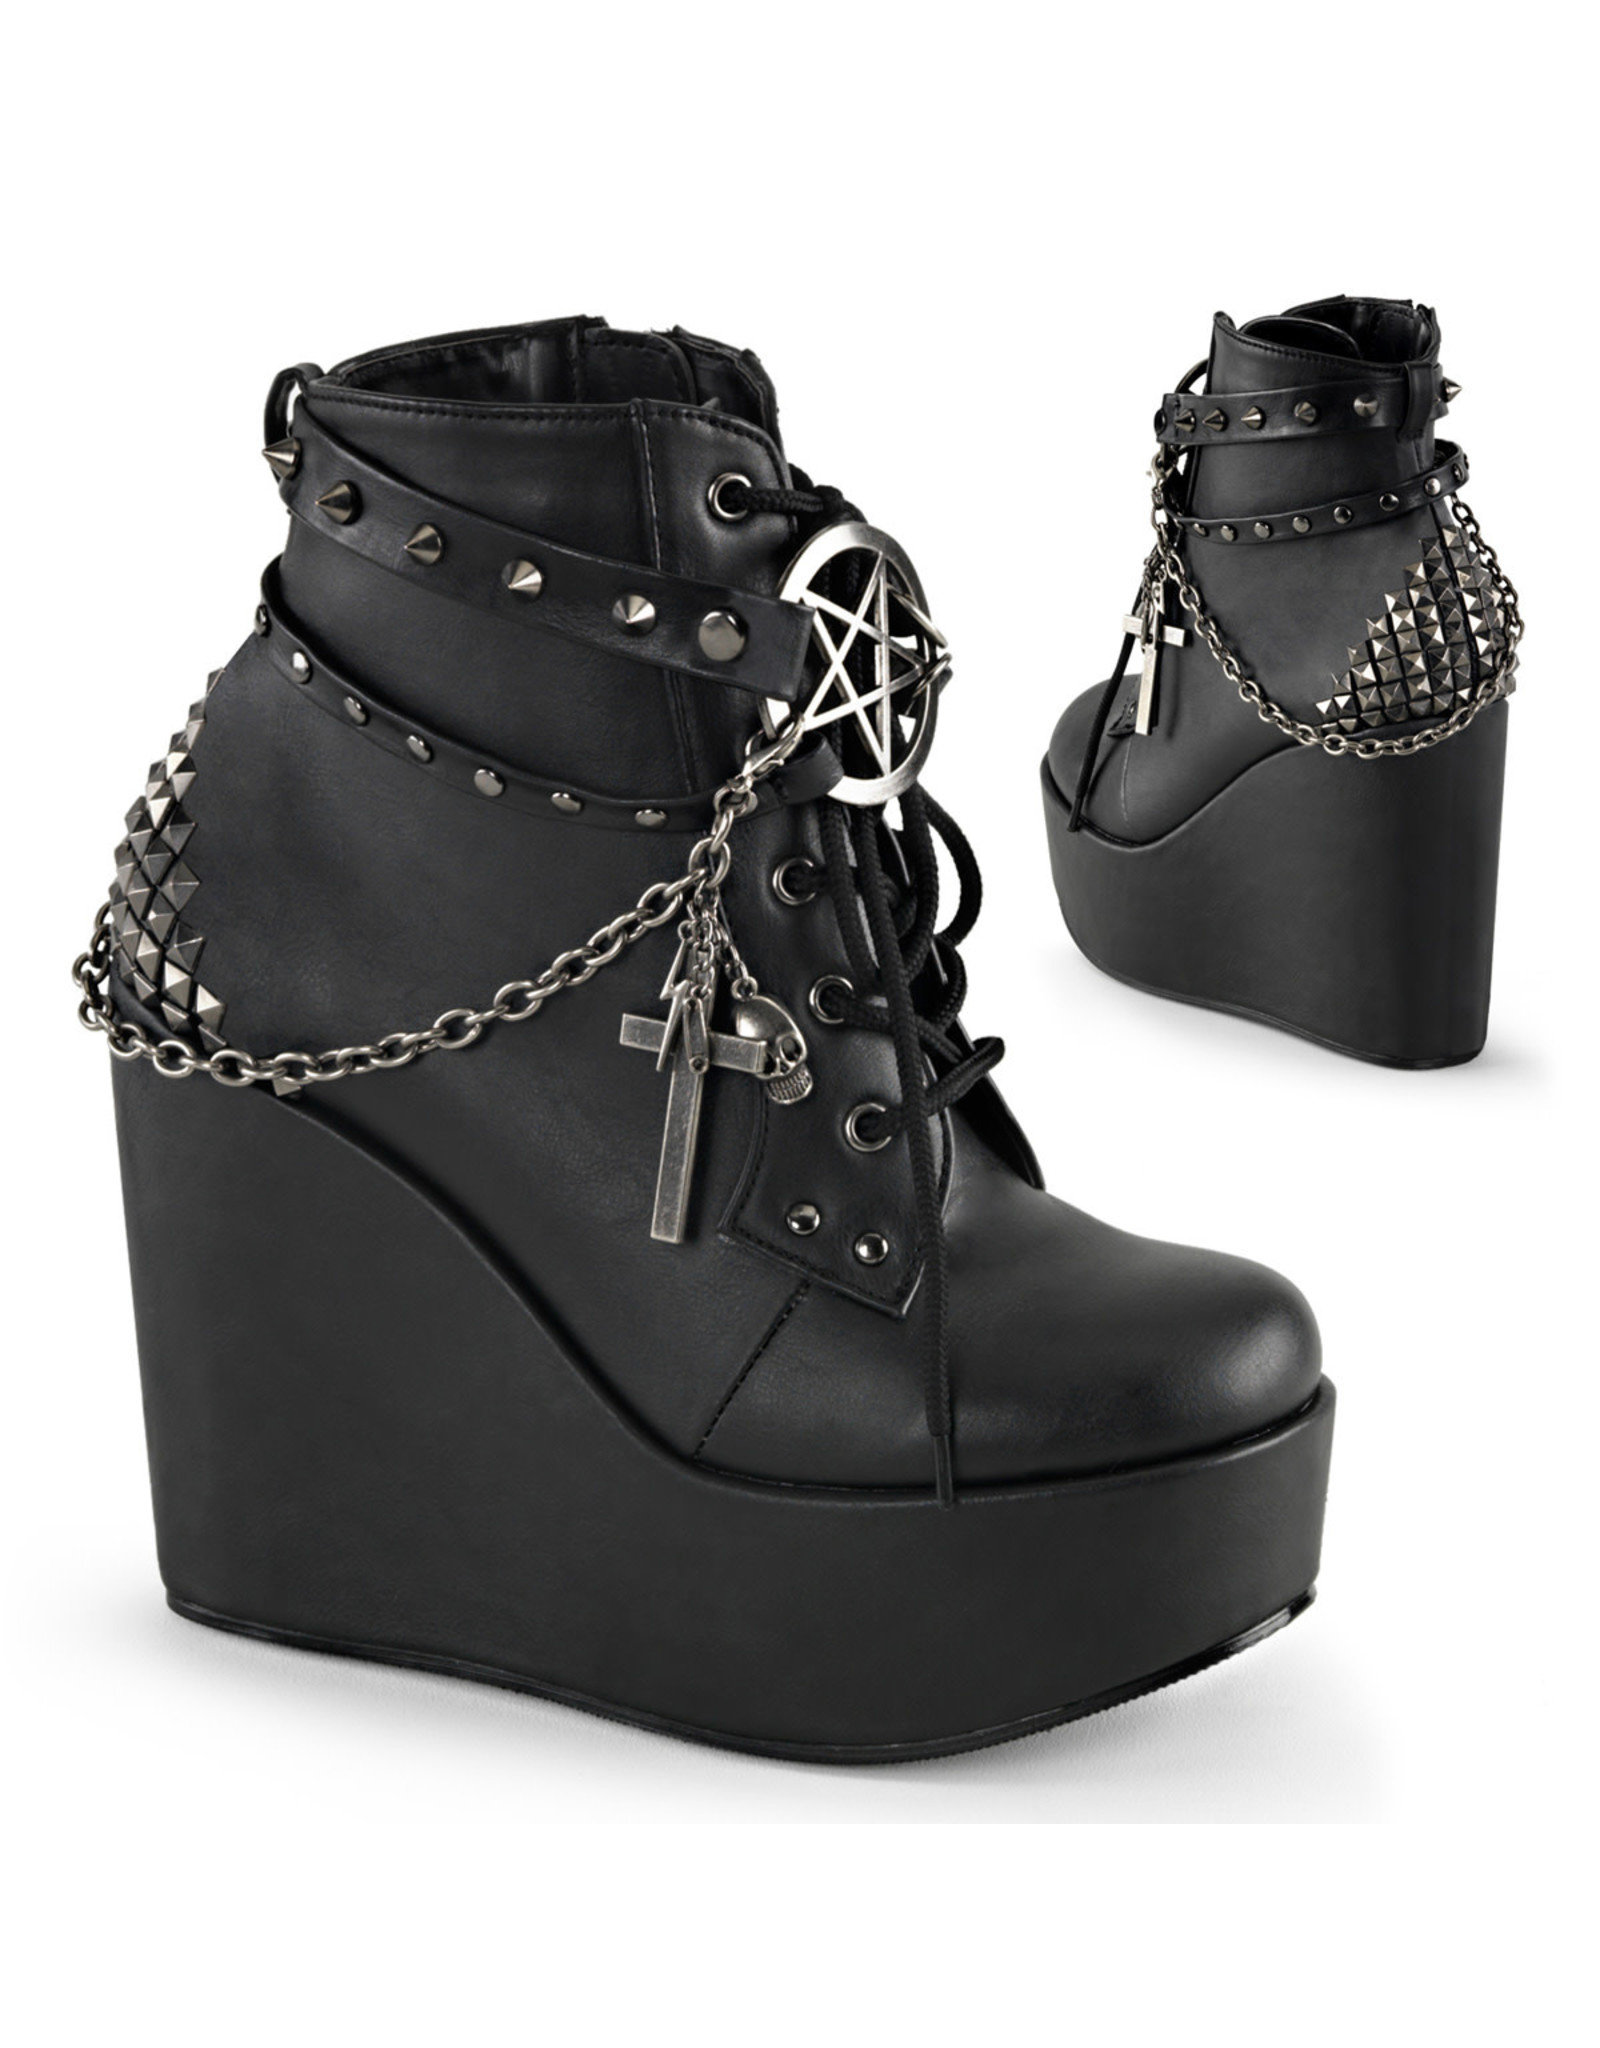 "DEMONIA POISON-101 5"" Wedge PF Boot w/Straps, Studs, Assorted Charms & Chain D37VBC"